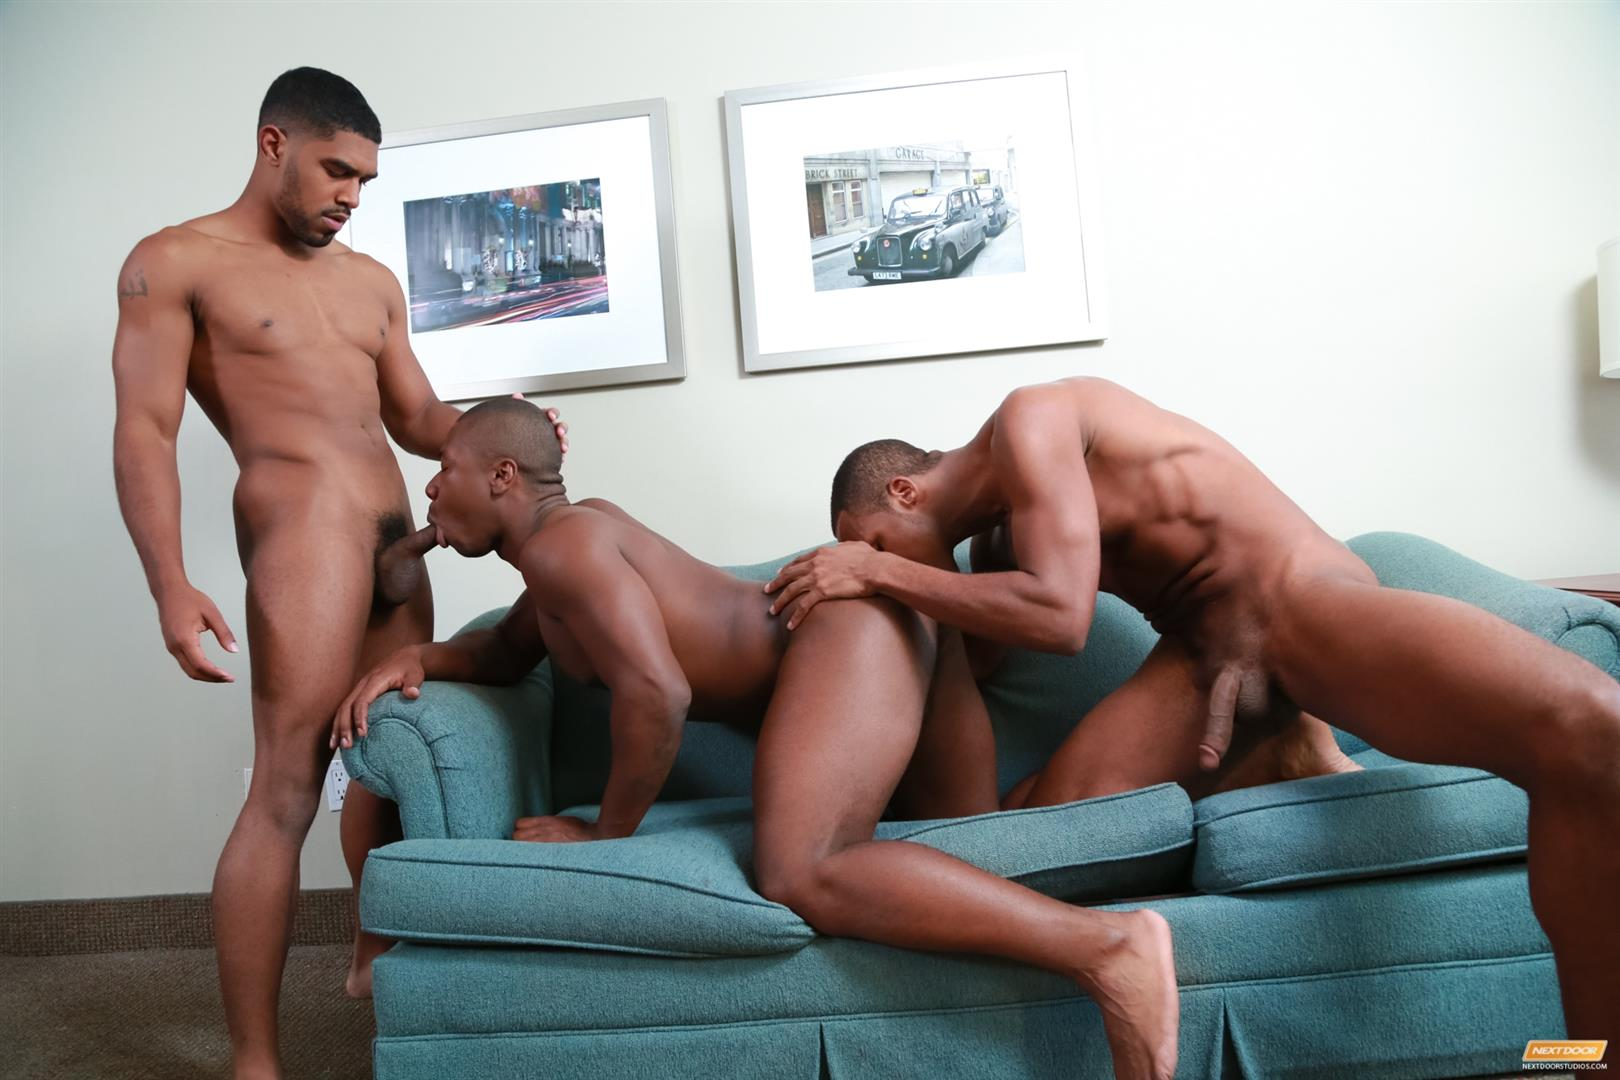 Next Door Ebony Damian Brooks and XL and Andre Donovan Black Naked Men Fucking Amateur Gay Porn 15